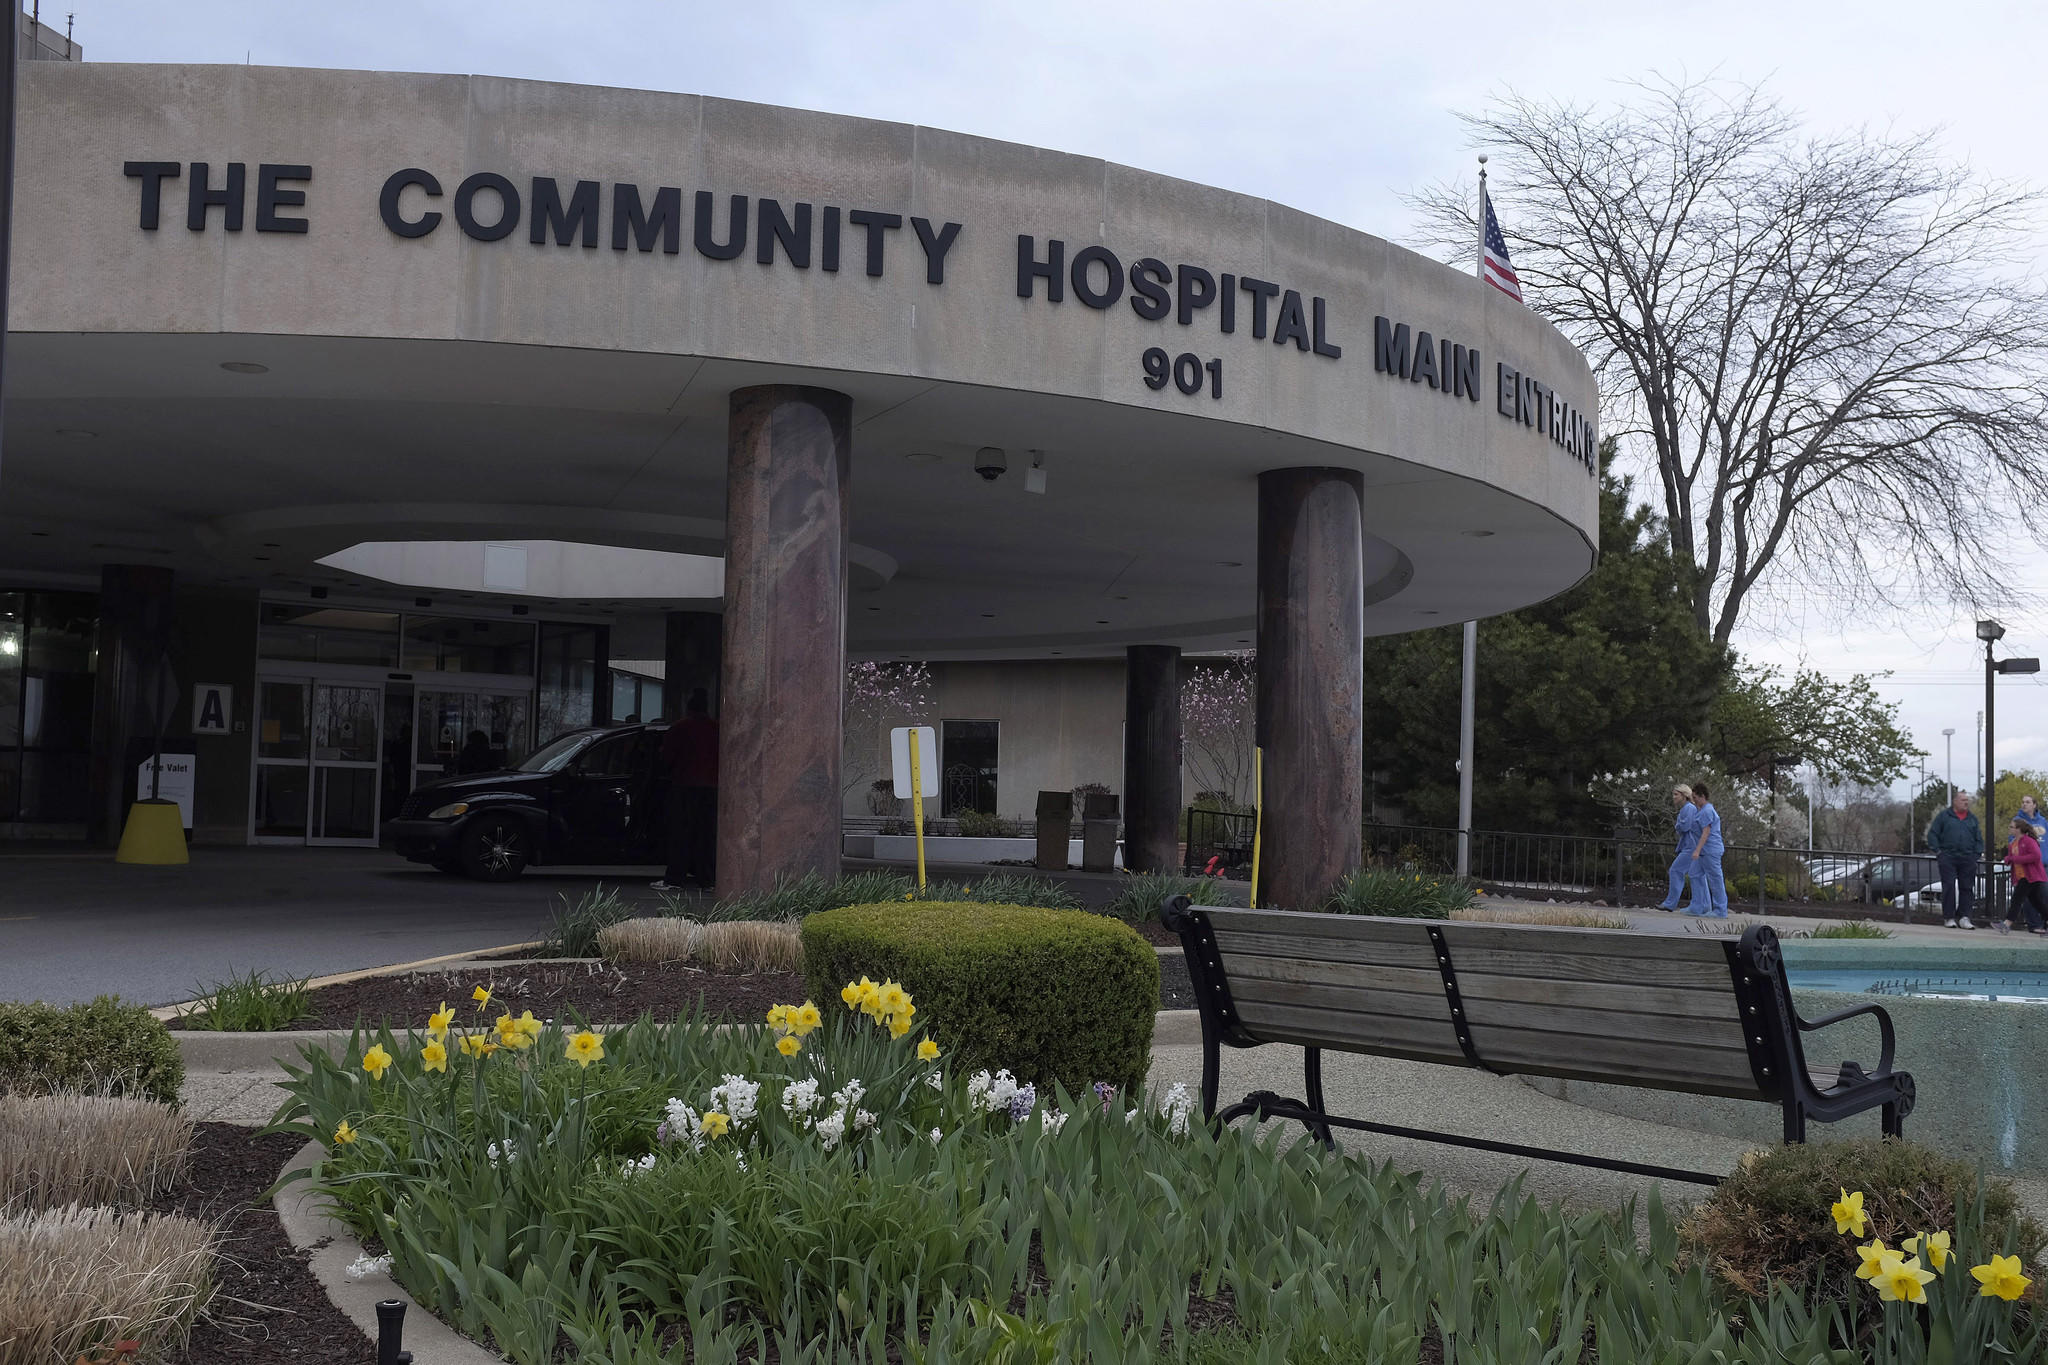 The Community Hospital in Munster, Indiana, where a patient with the first U.S. case of MERS, a respiratory virus that has caused deadly outbreaks in the Middle East, is hospitalized.